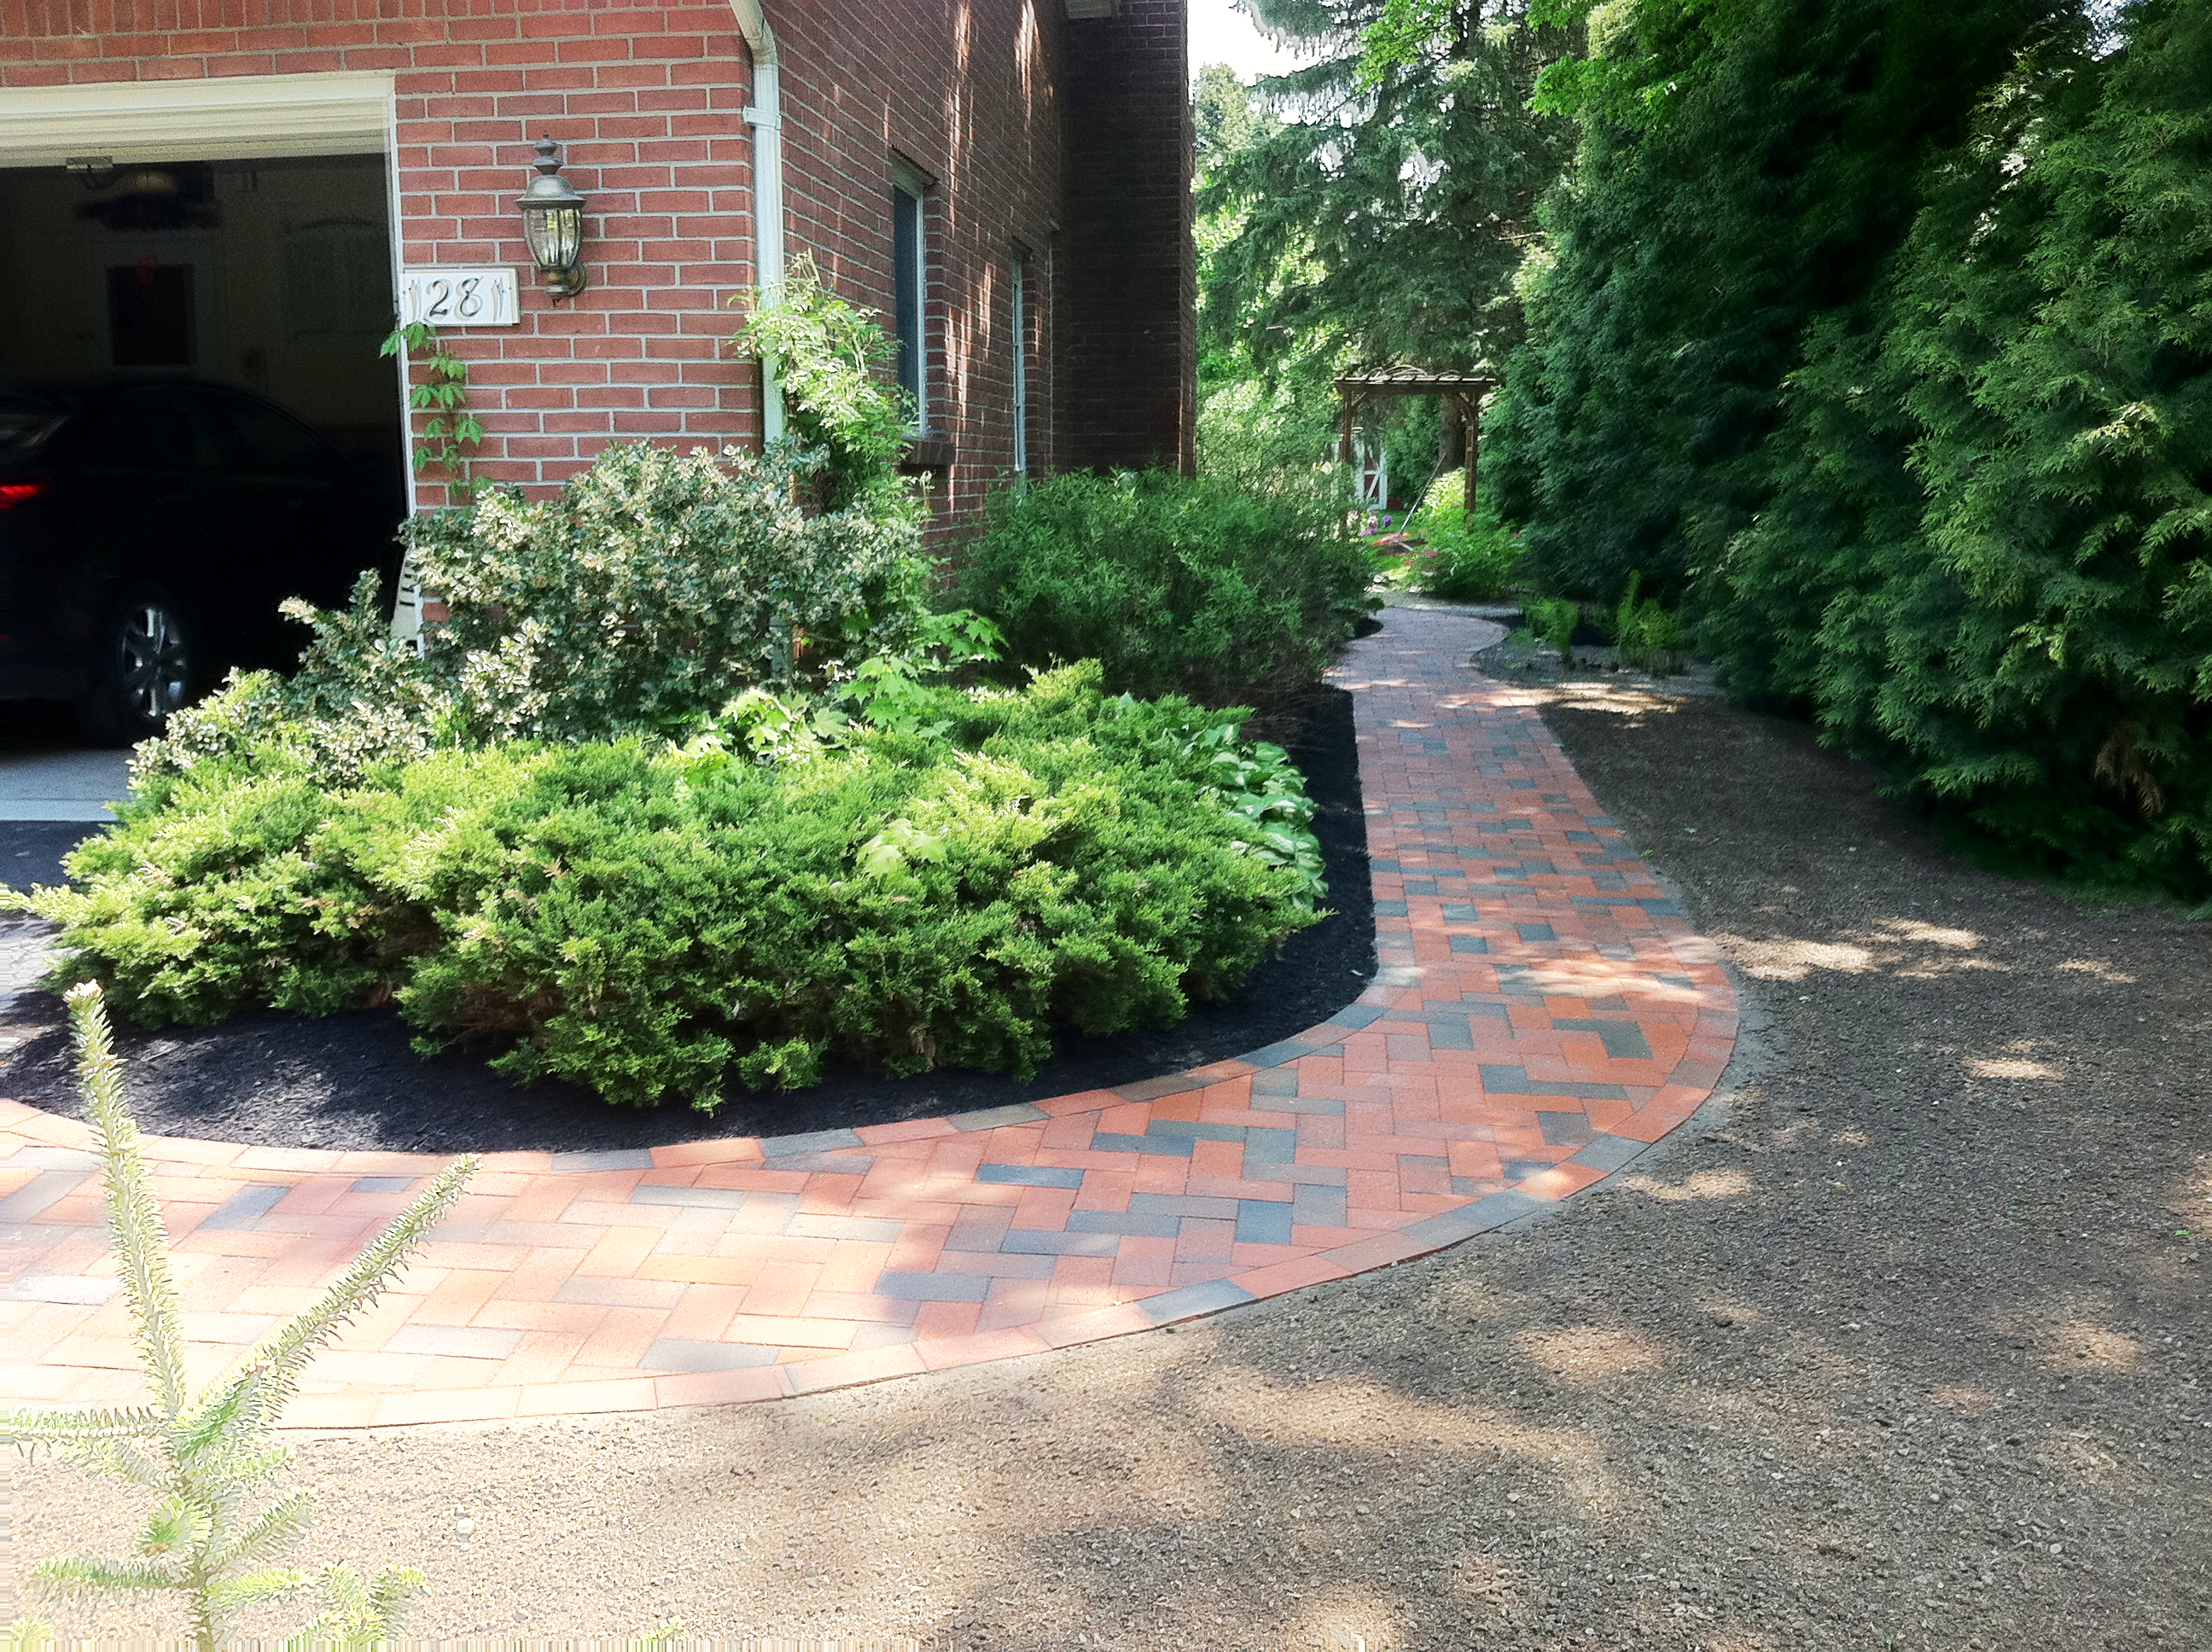 Brick Paving in Western NY